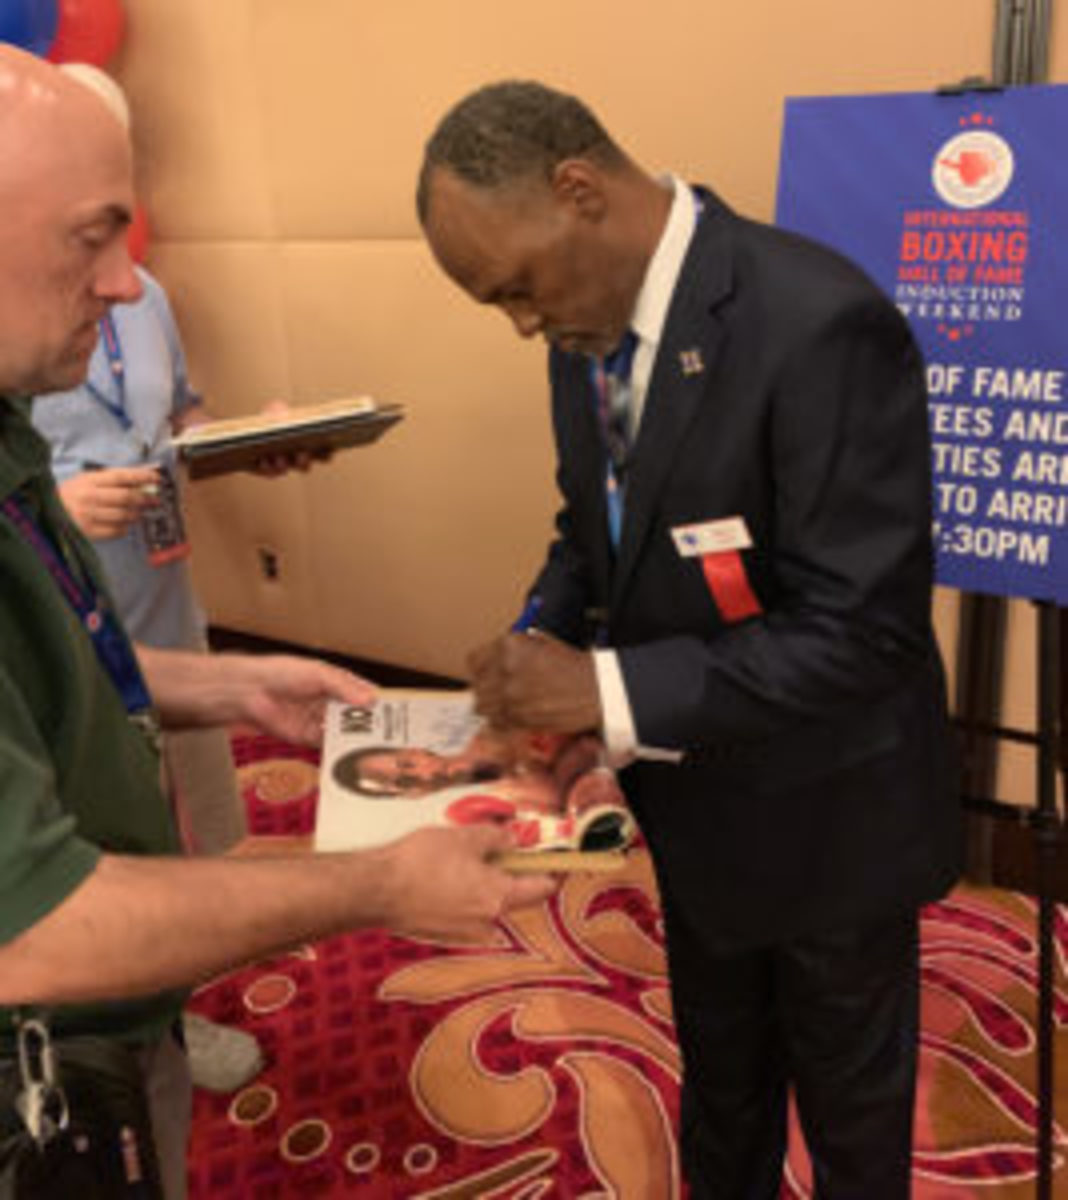 Donald Curry signs autographs for collectors at the VIP Boxing Card Event.